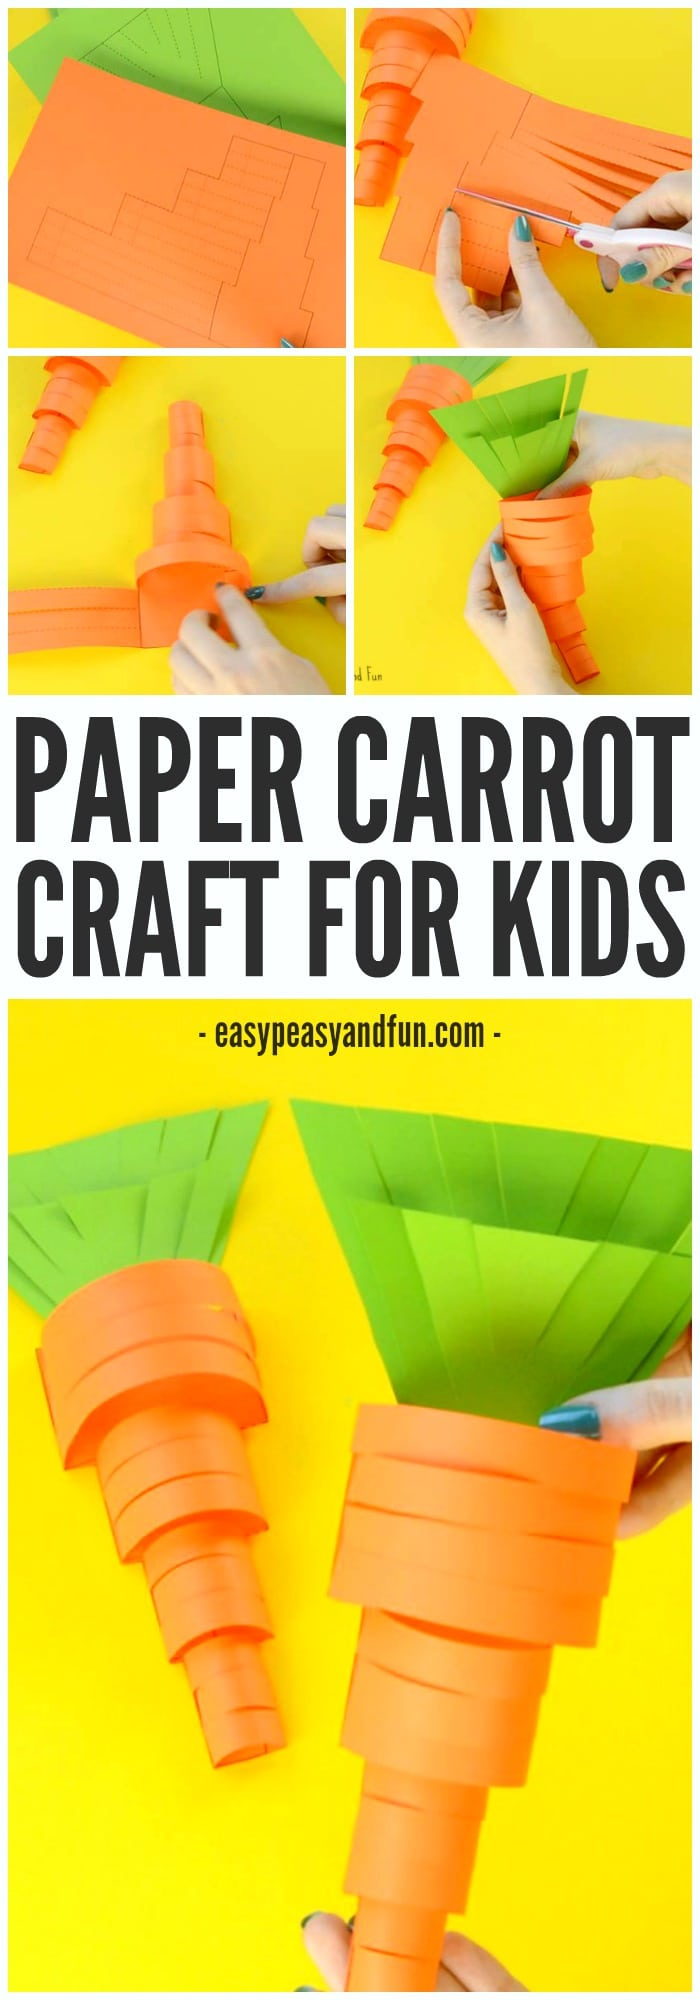 Printable Paper Carrot Craft for Kids to Make